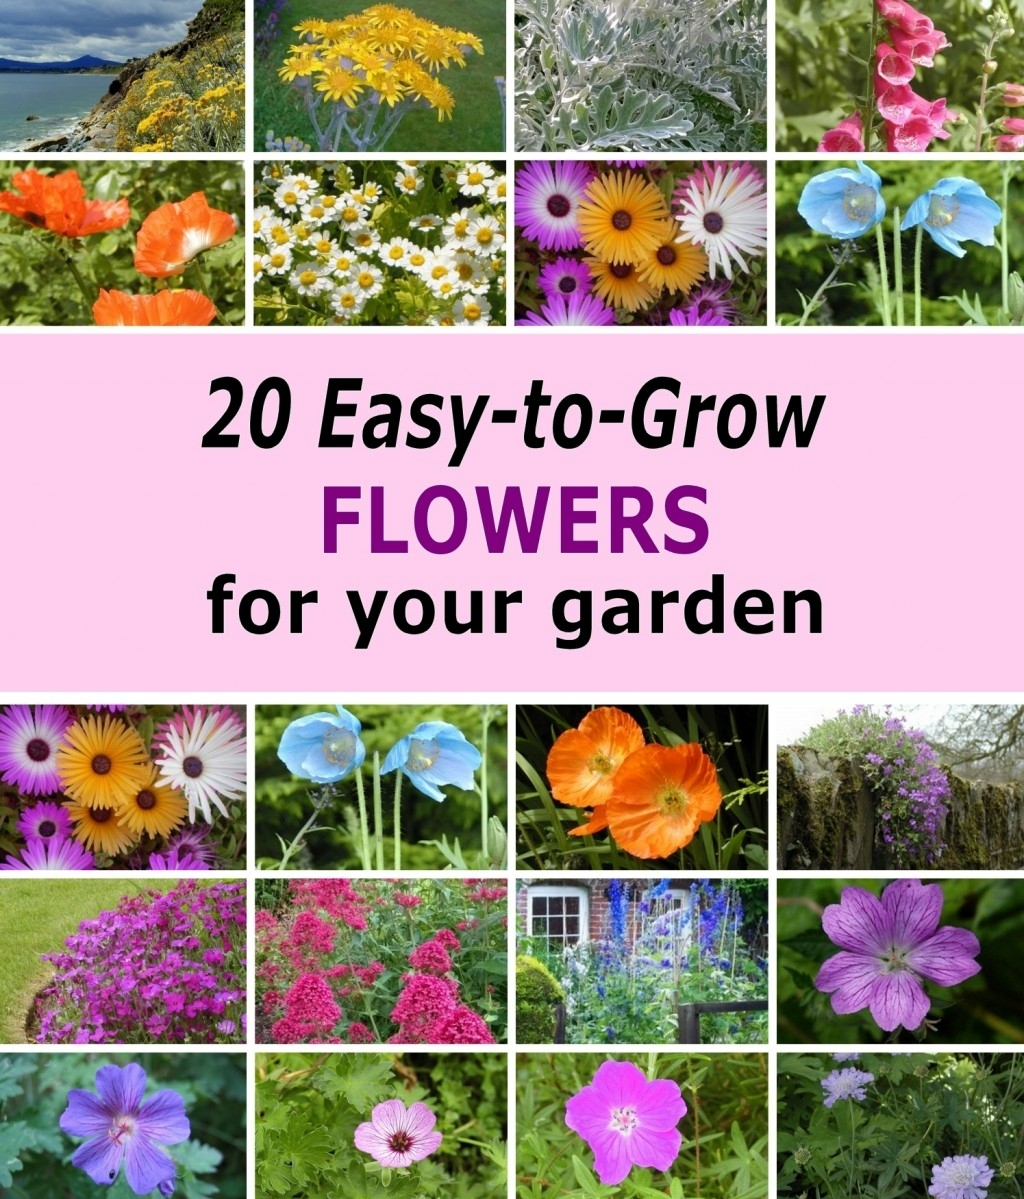 20 Easy-To-Grow Flowers For Garden Planters And Flower Beds! | Dengarden in Garden Flowers Easy To Grow